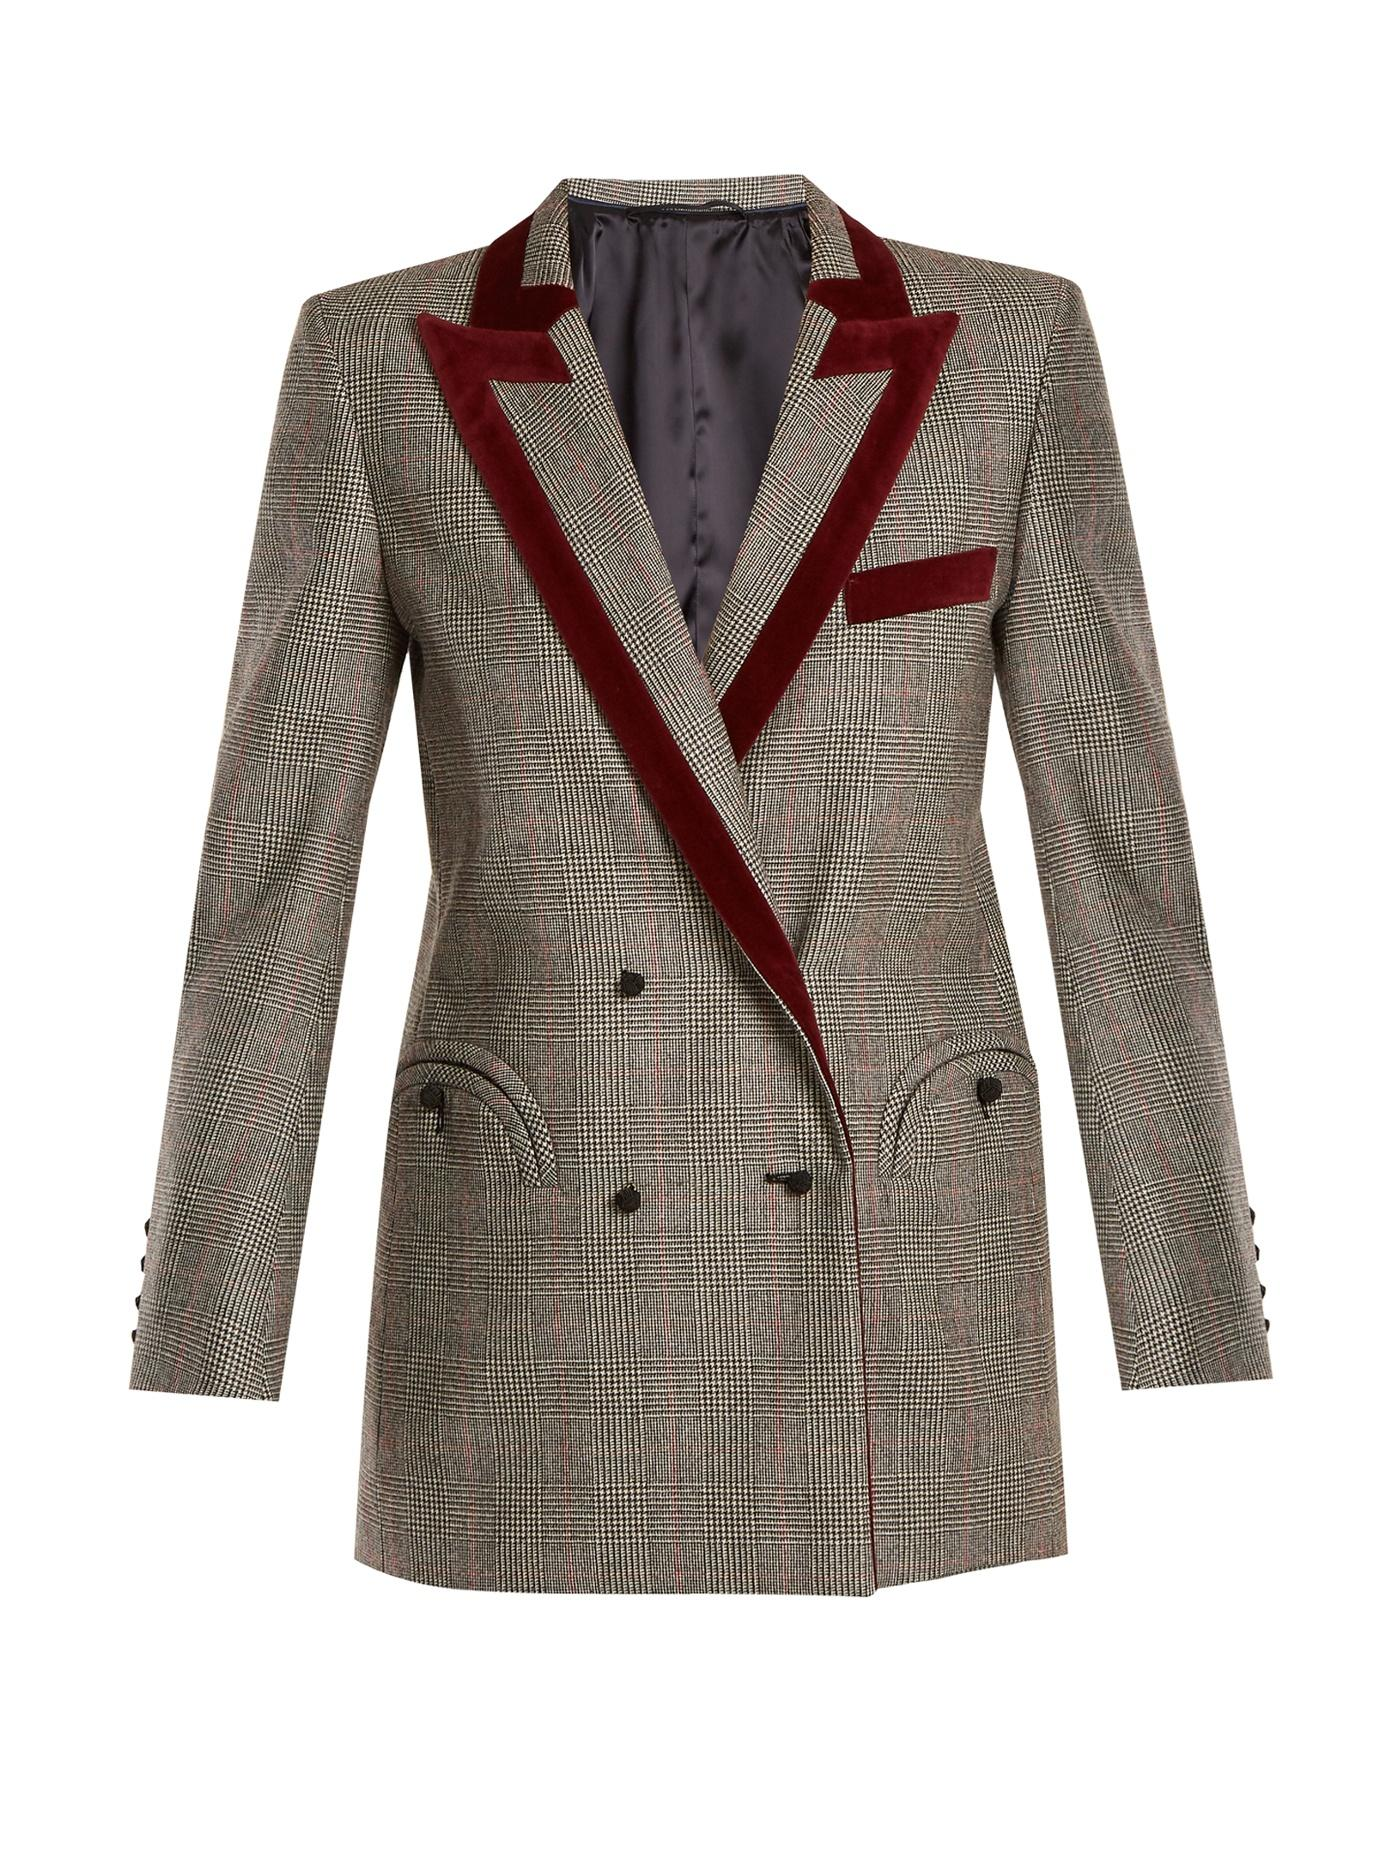 BlazÉ Milano High Kingdom Everyday Checked Wool Blazer In Black White